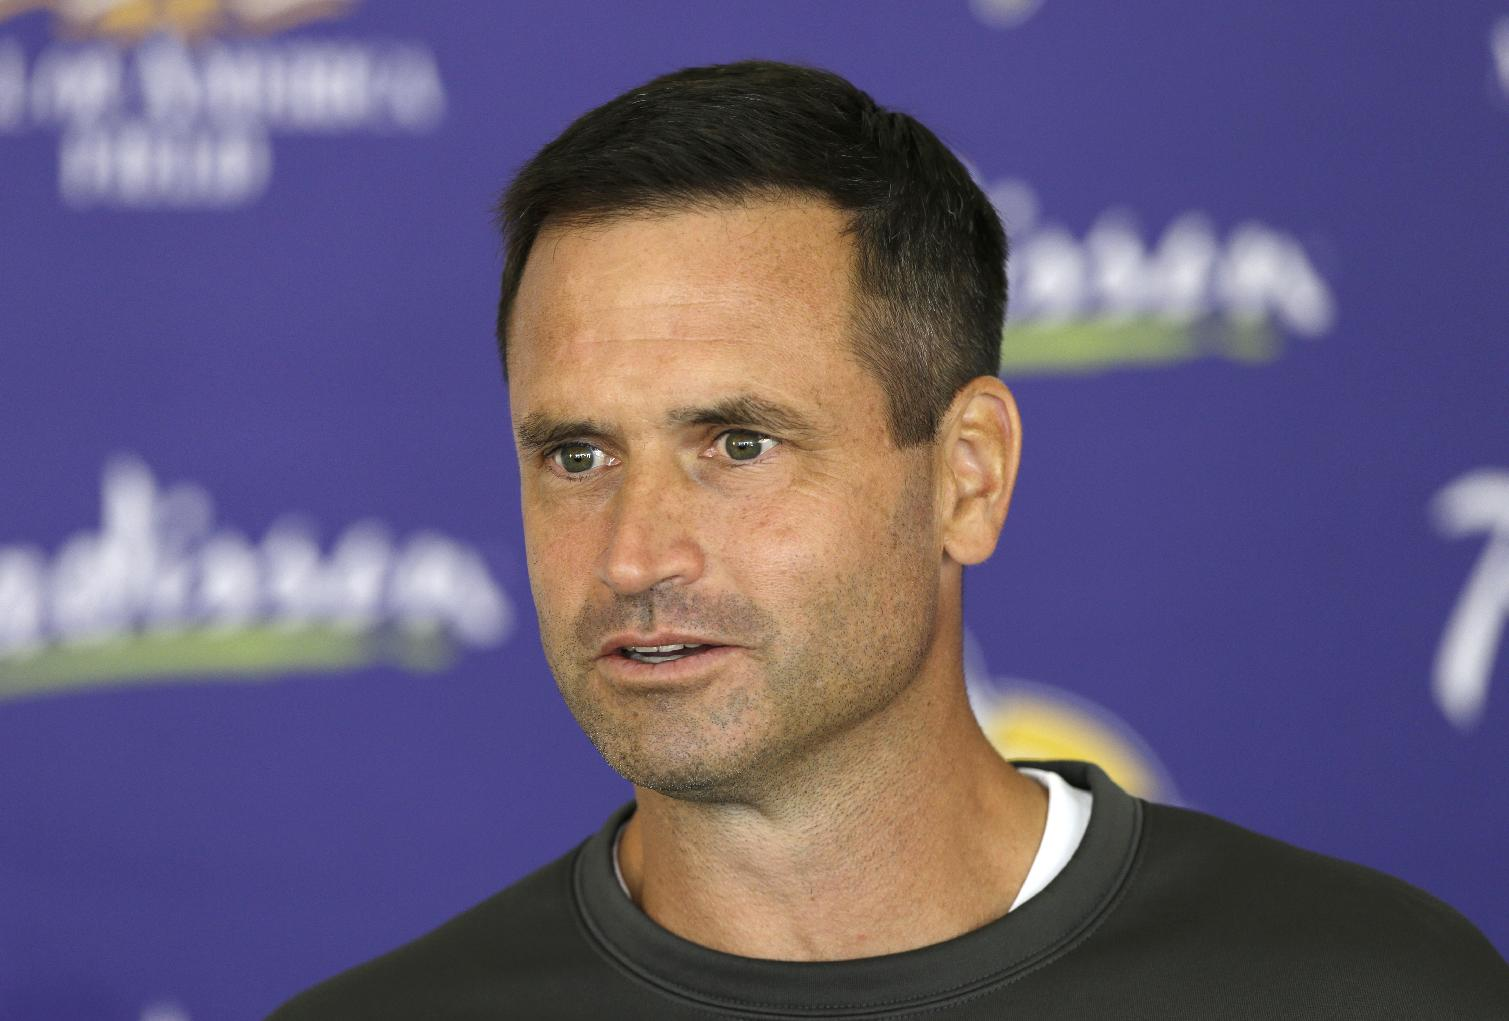 In this July 27, 2013, photo, Minnesota Vikings special teams coordinator Mike Priefer speaks to reporters following practice at NFL football training camp in Mankato, Minn. Former Minnesota punter Chris Kluwe says Priefer made anti-gay comments while Kluwe was with the Vikings. Kluwe wrote a scathing article on the website Deadspin on Thursday, Jan. 2, 2014. In it, he alleges that Priefer made several anti-gay comments in objection to Kluwe's outspoken support of a gay marriage amendment in Minnesota. Kluwe also said coach Leslie Frazier and general manager Rick Spielman encouraged him to tone down his public rhetoric on gay marriage and several other issues. Kluwe was cut last summer and did not play in the NFL this season. The Vikings issued a statement saying they take the allegations seriously. They also say he was released because of his football performance, not something else